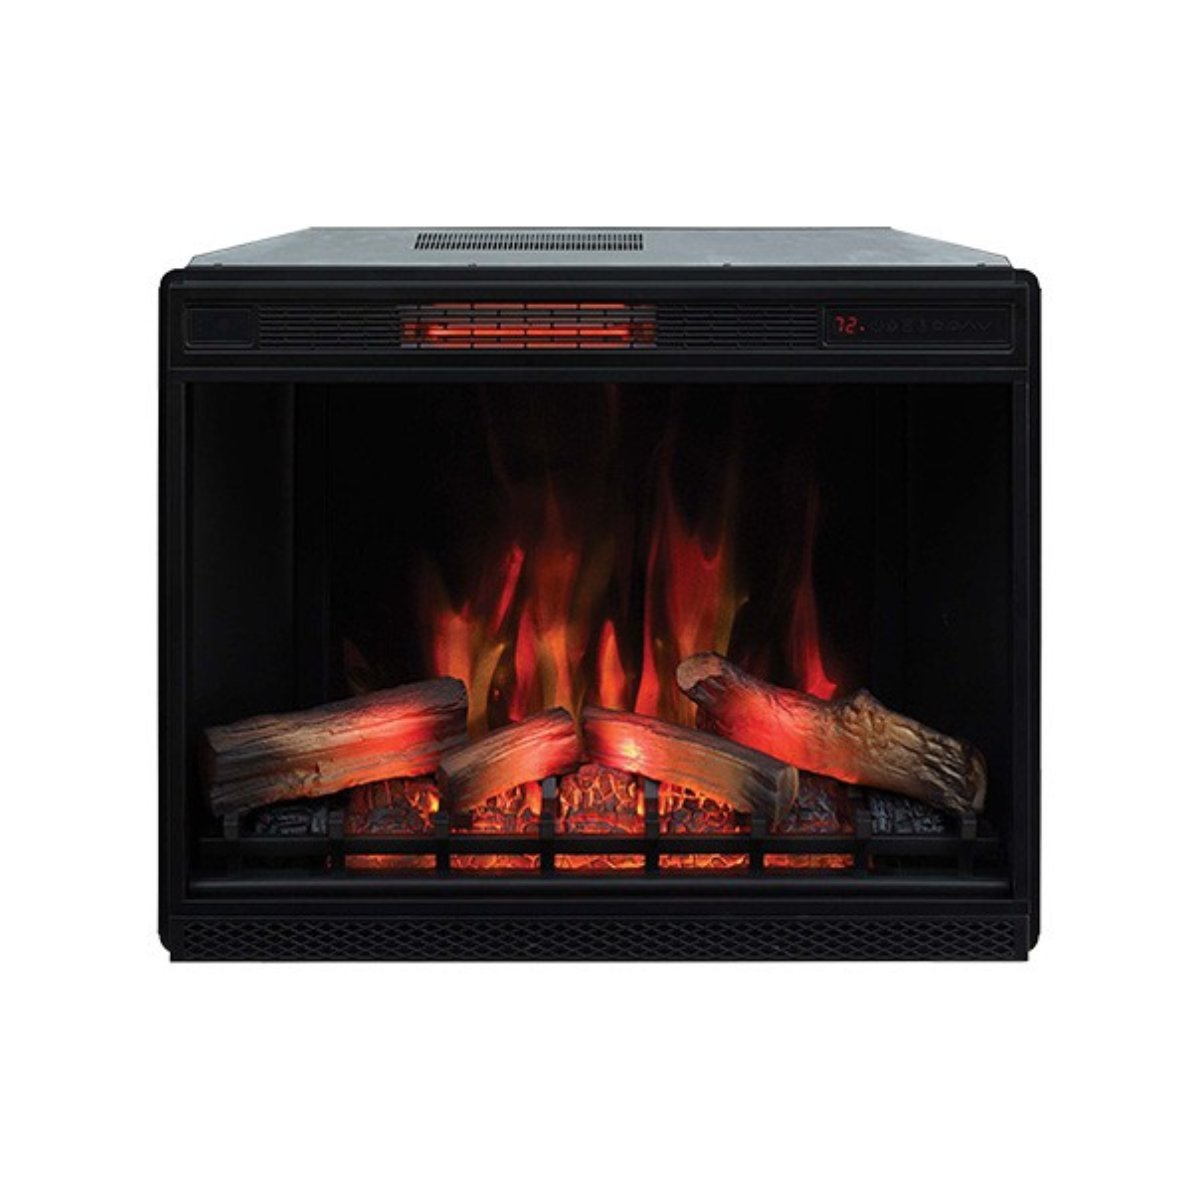 Dimplex 30 Revillusion Built In Electric Fireplace Rbf30